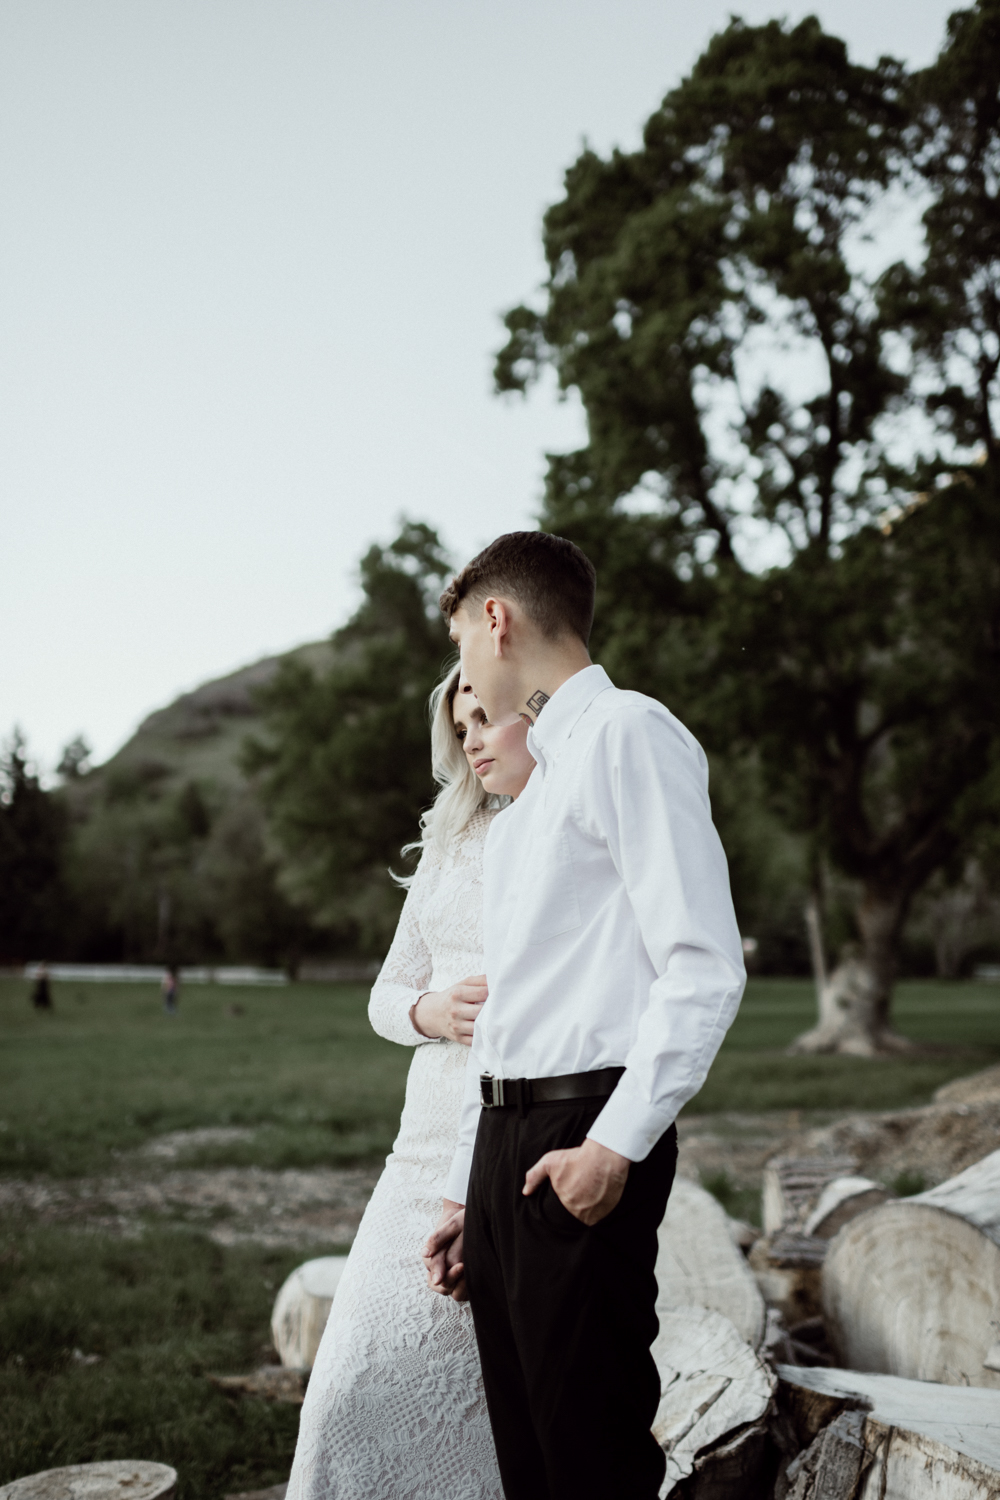 Jolleys-ranch-springville-utah-bridal-photography-19.jpg